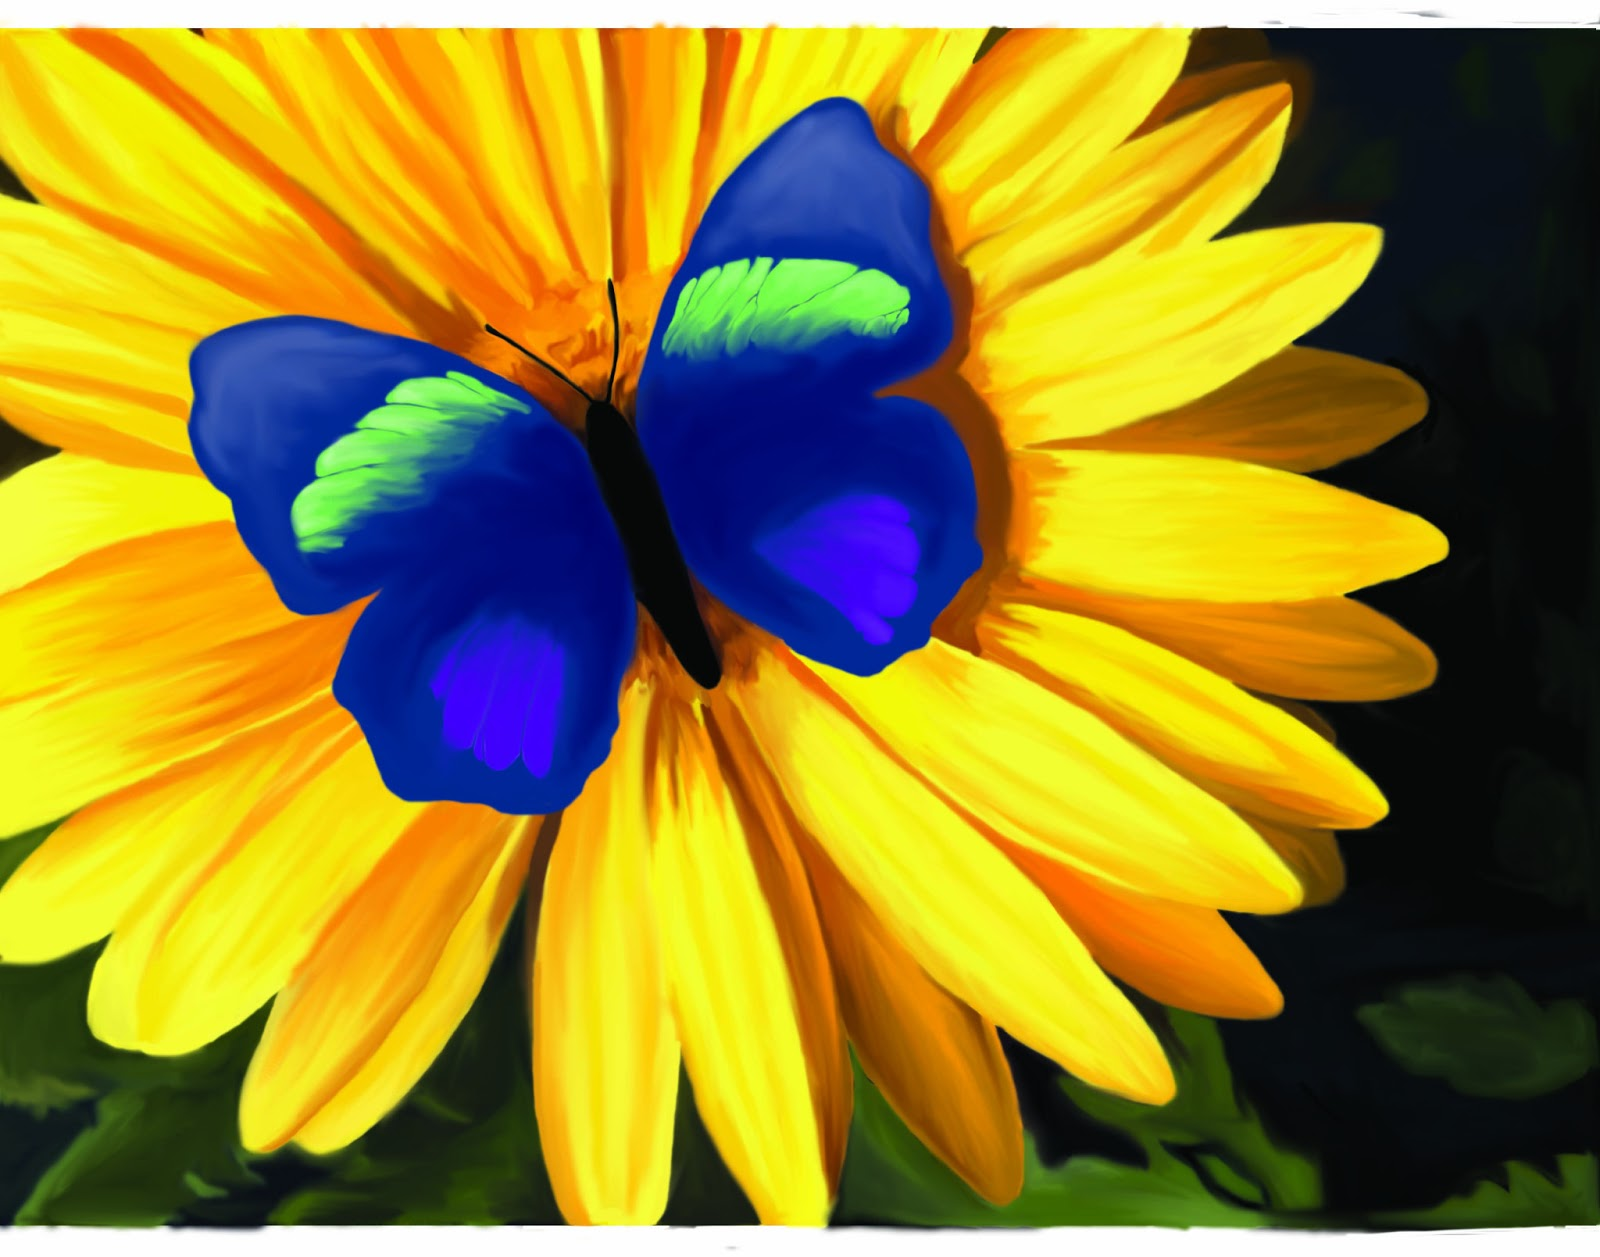 julias creative imaging artwork butterfly on a flower